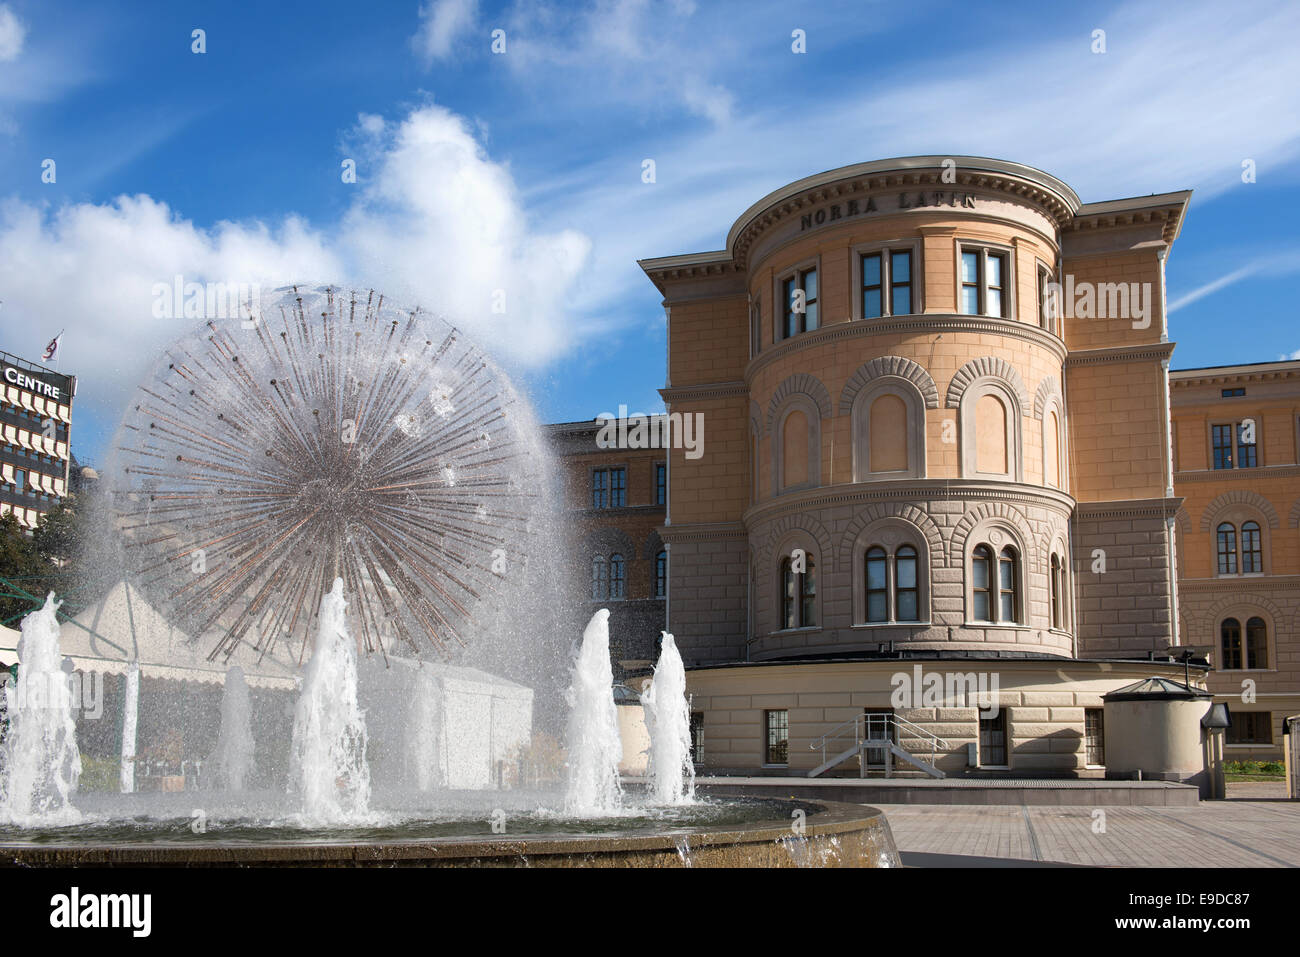 A fountain in front of Norra Latin conference center, Stockholm, Sweden - Stock Image